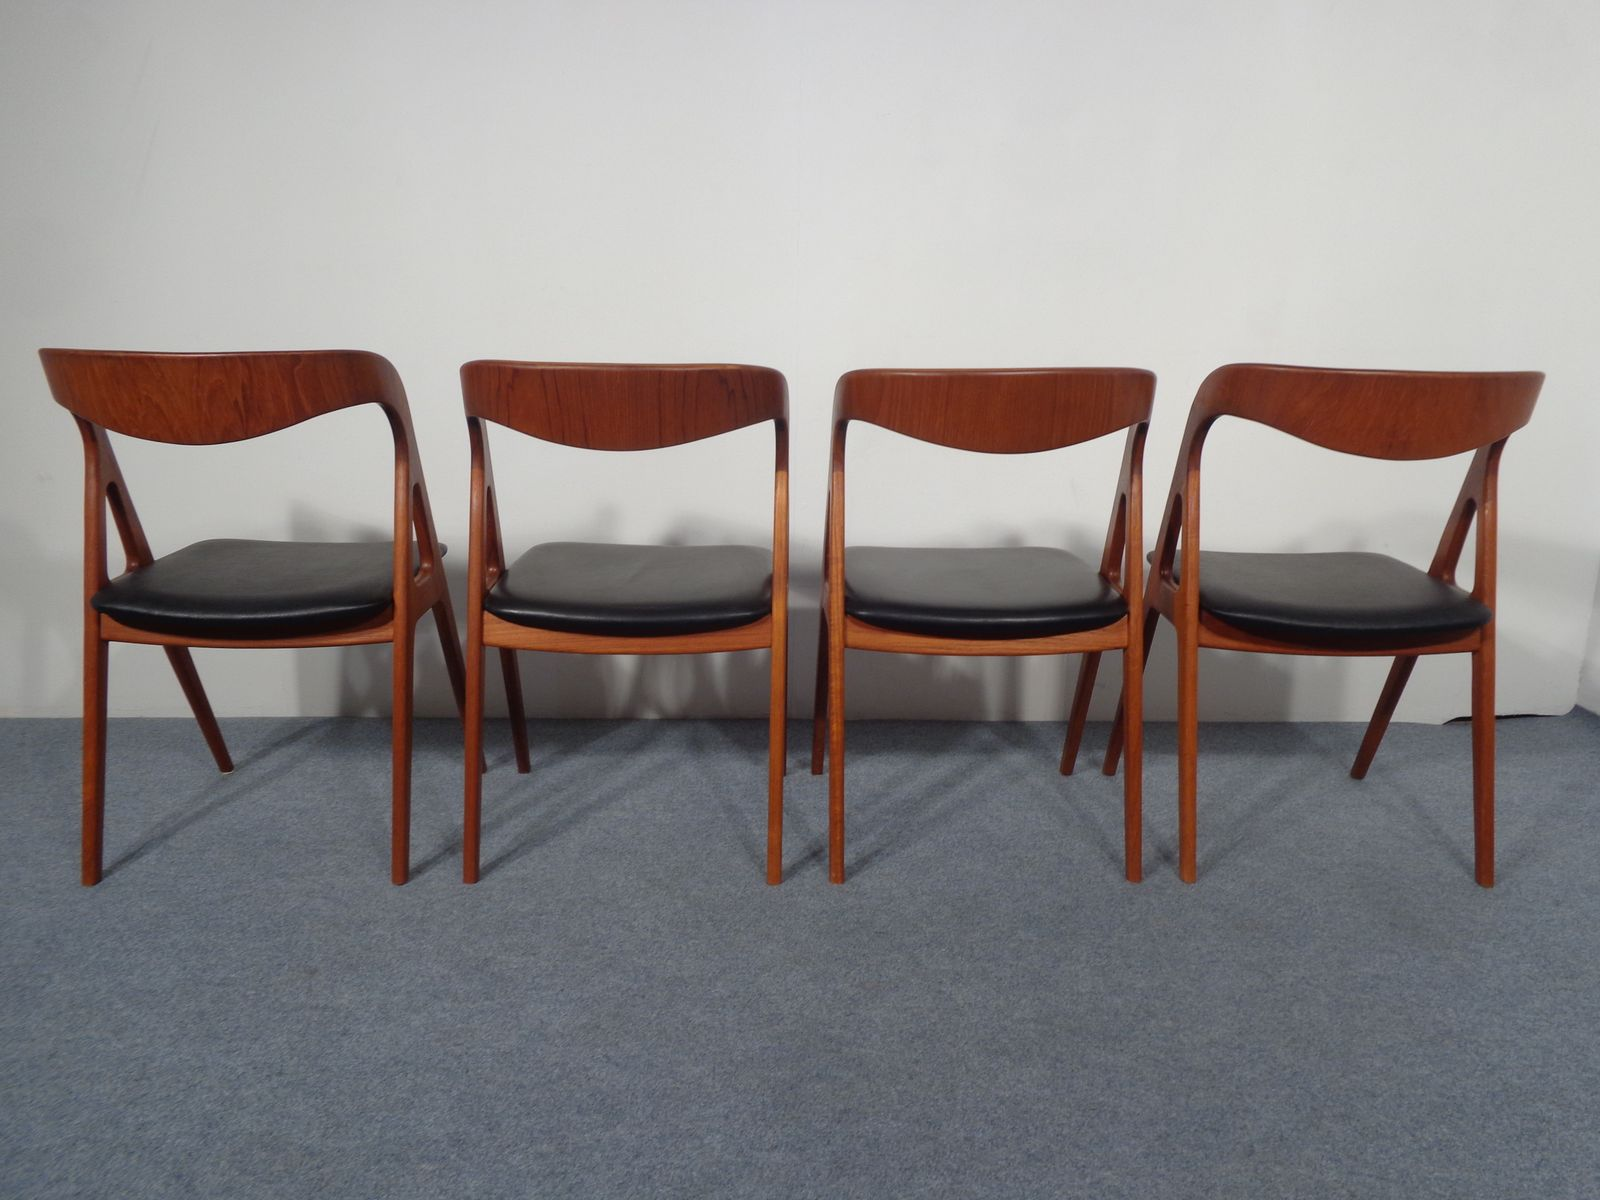 vintage teak dining chairs from vamo set of 4 for sale at pamono